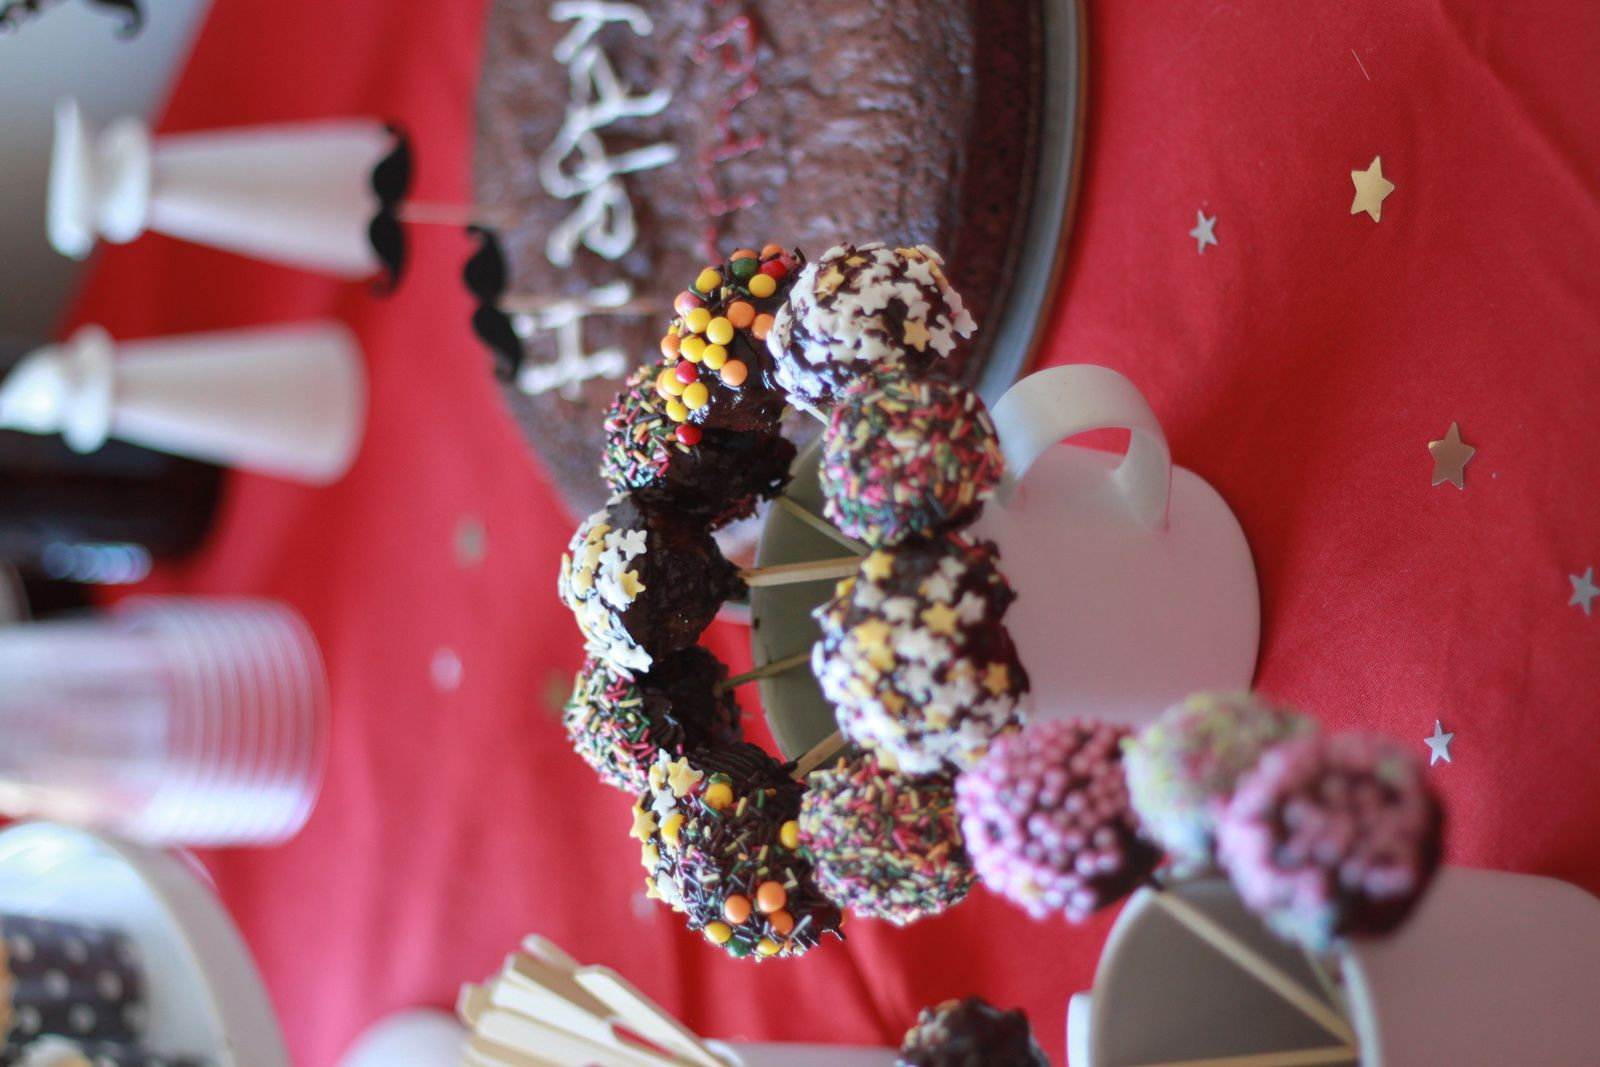 Joli bouquet de pop cakes!